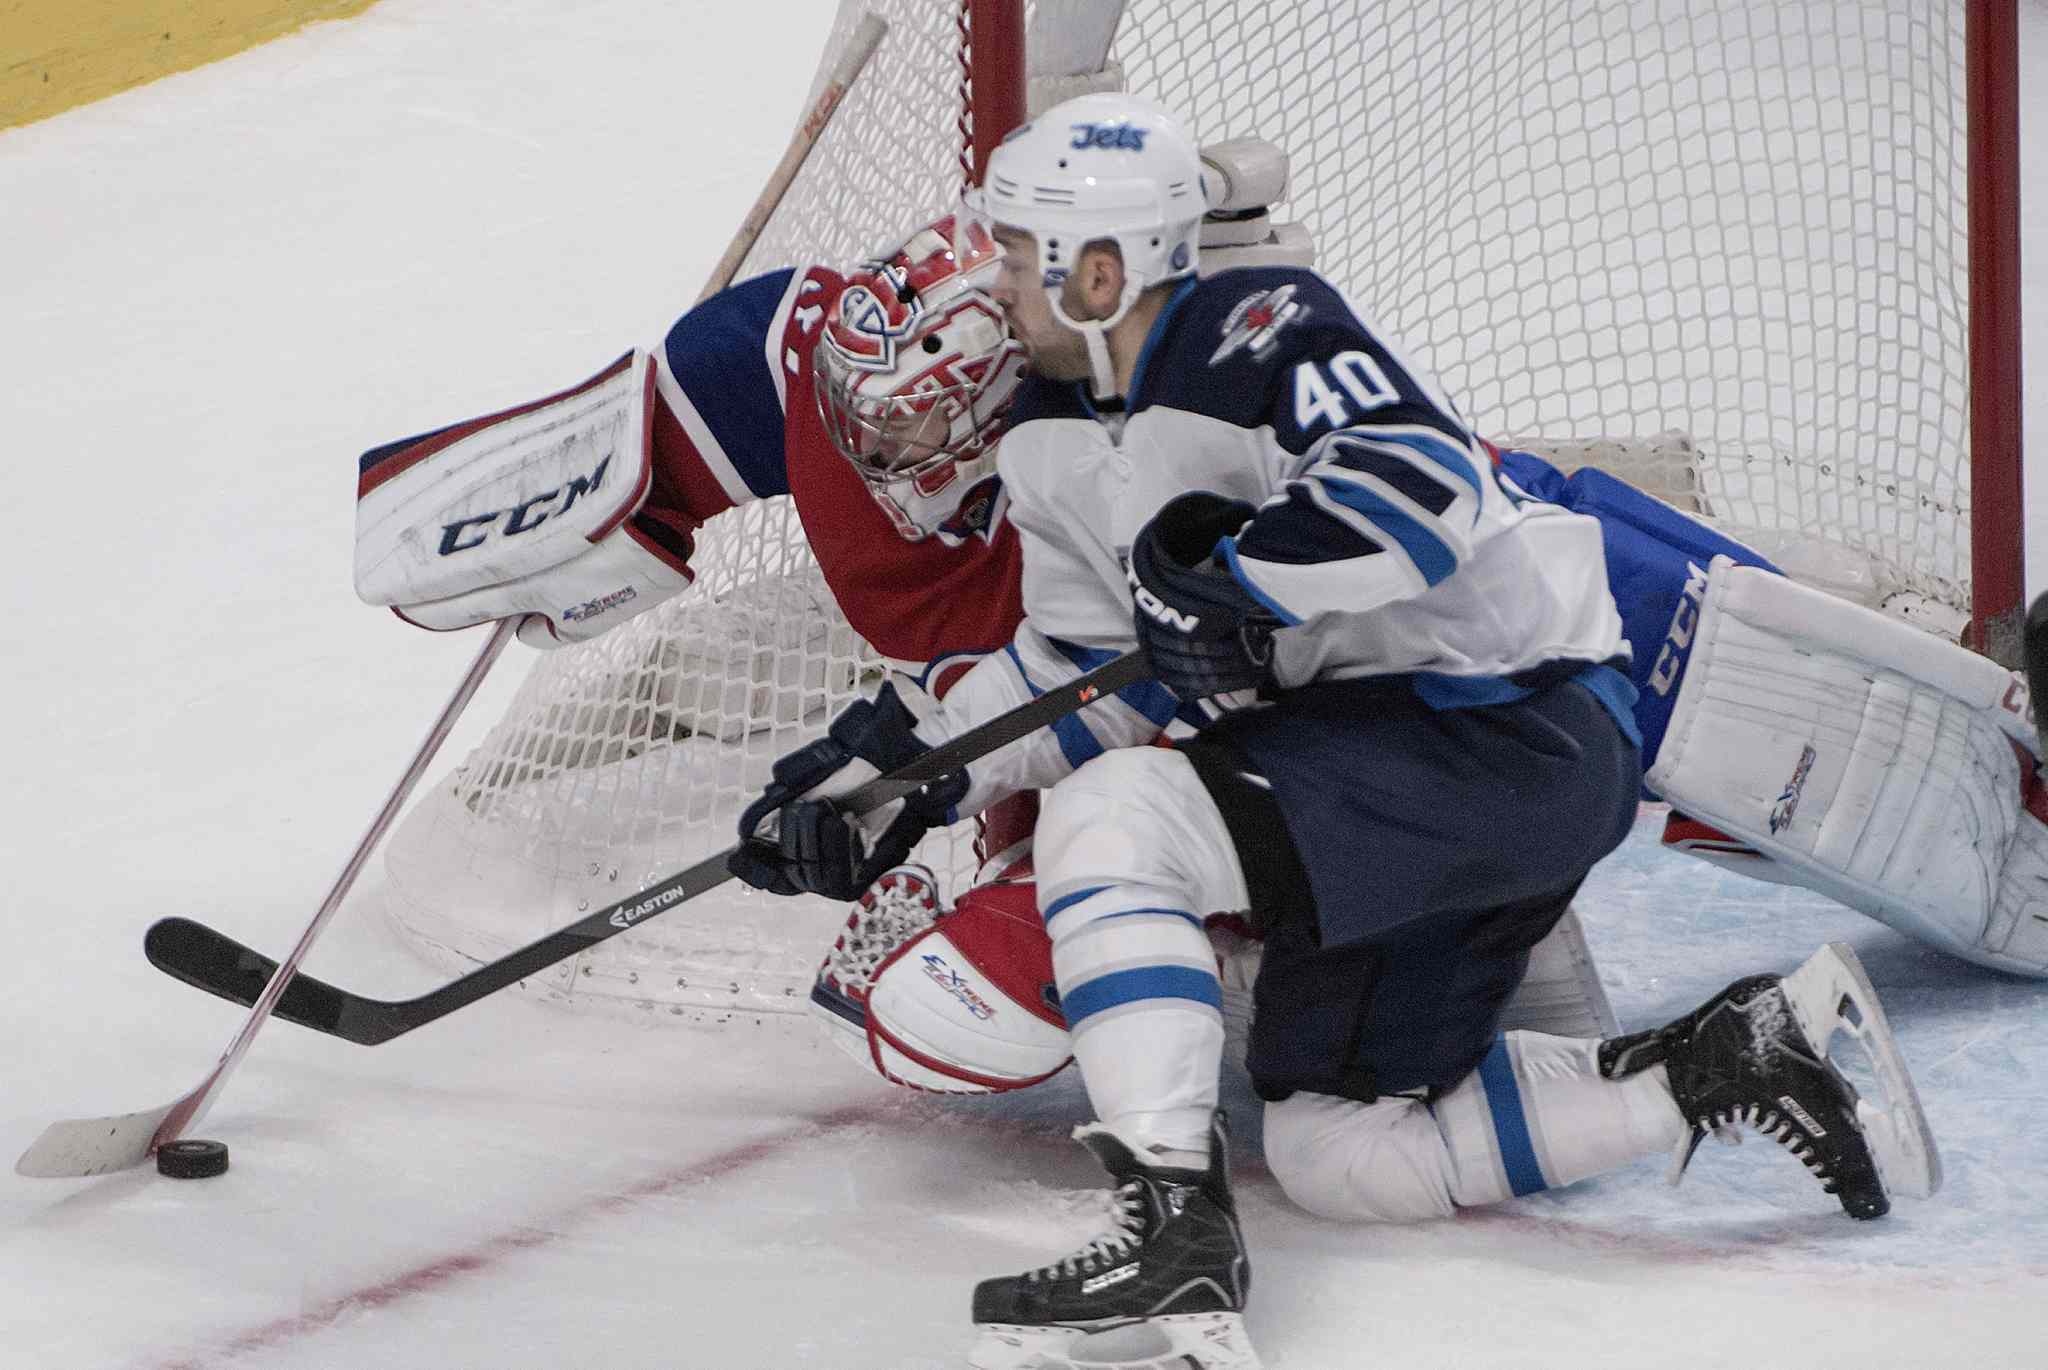 The Jets Devin Setoguchi battles Montreal Canadiens goalie Carey Price for the puck Sunday in Montreal.